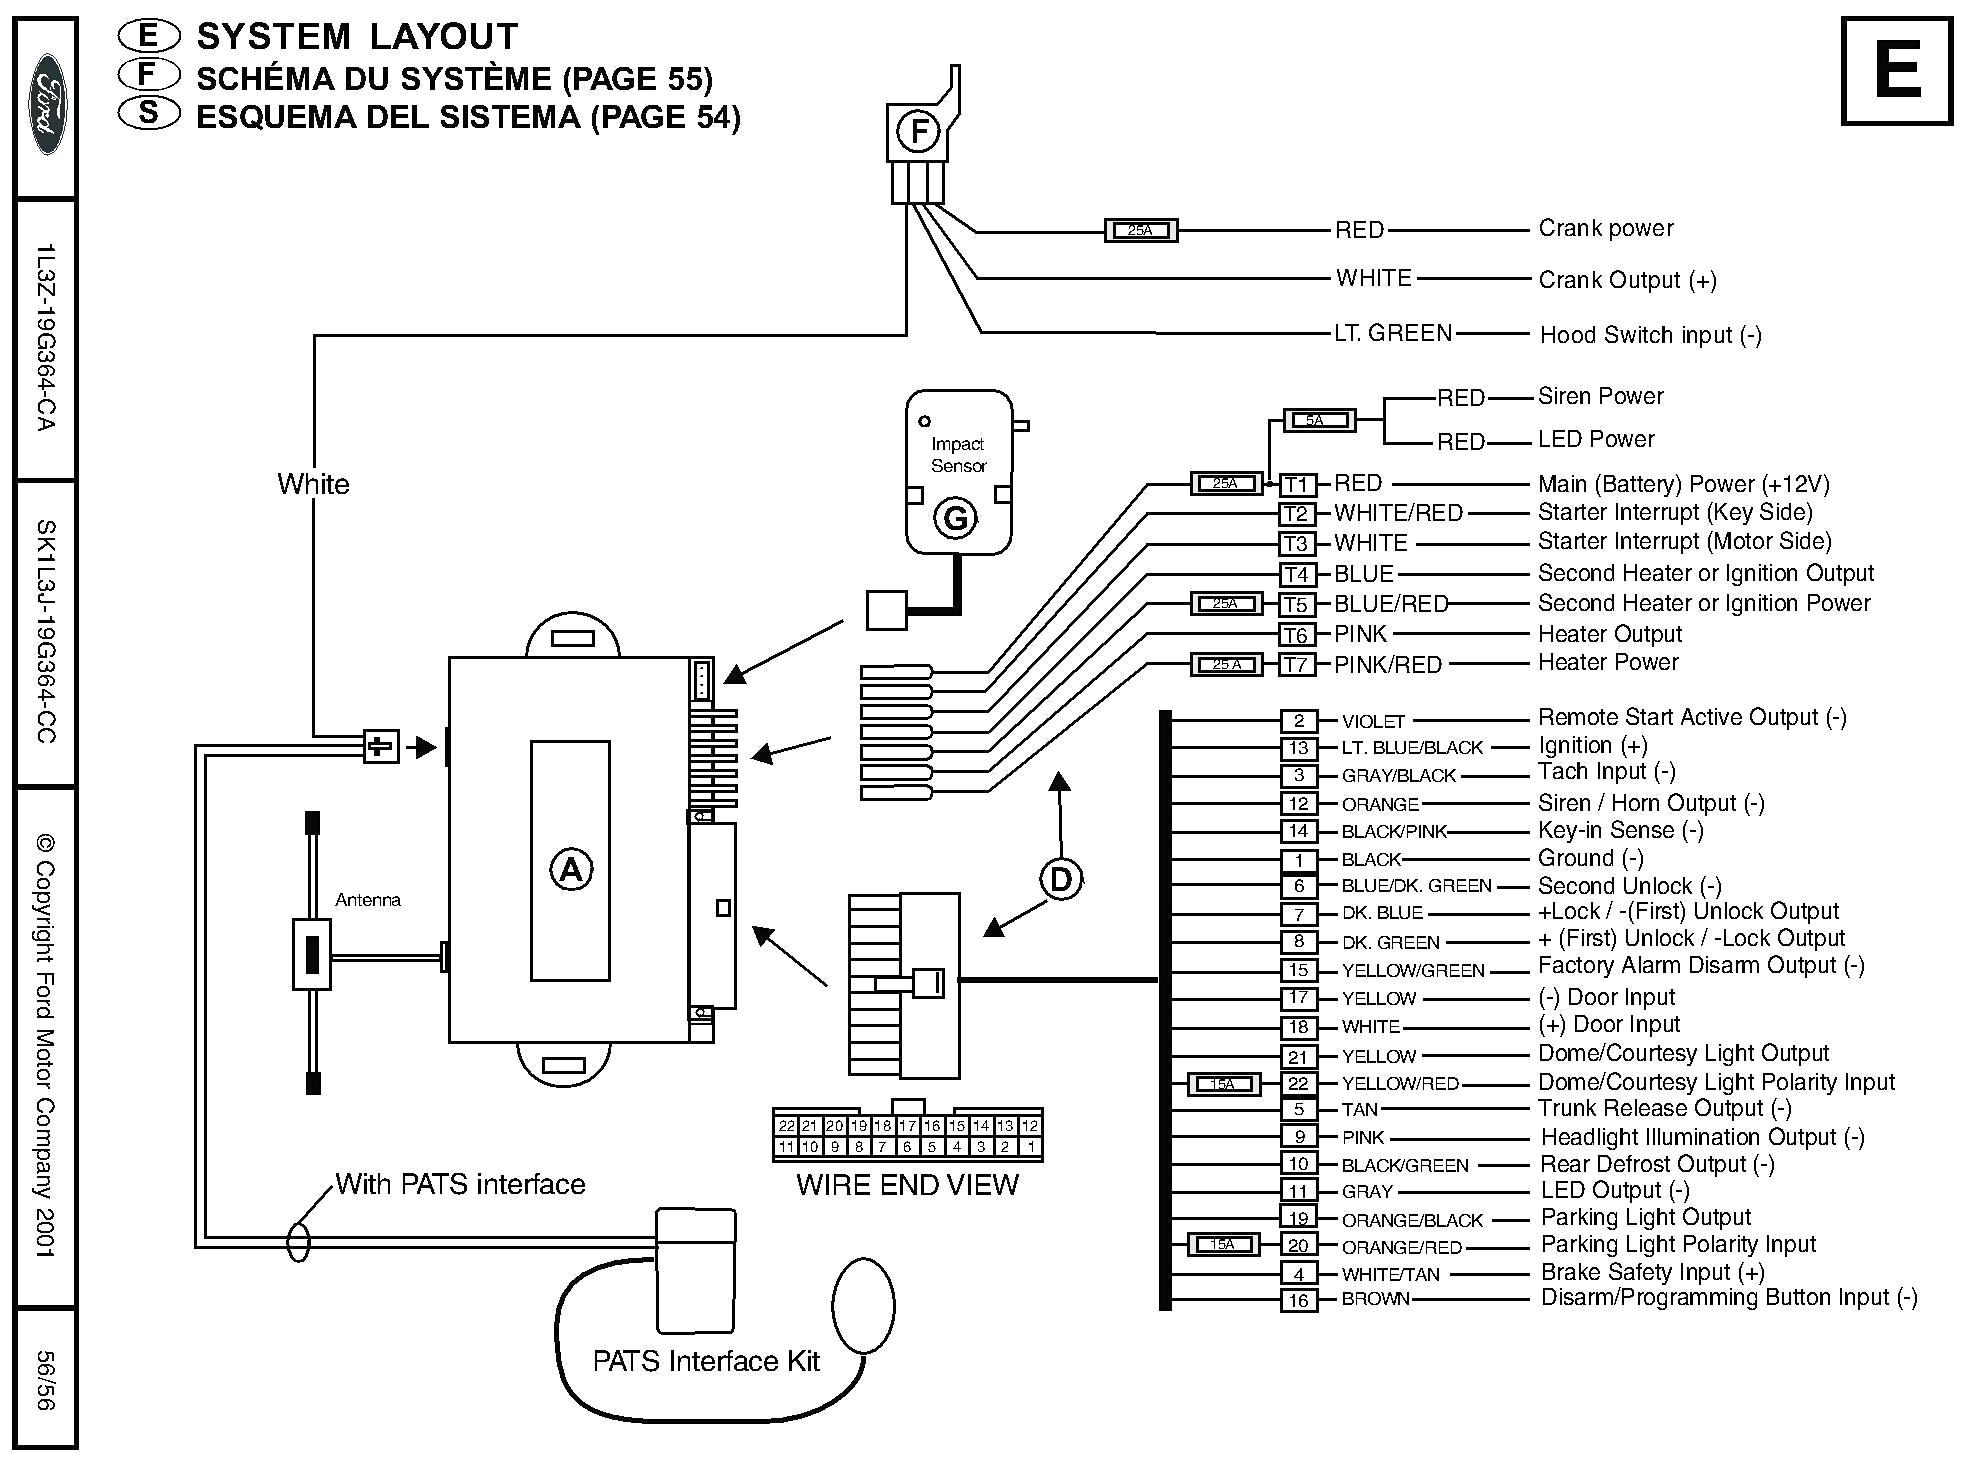 Basic Car Wiring Diagram Honda Fit on honda fit owners manual, honda fit starter, honda fit timing, honda fit suspension diagram, honda fit clutch, honda fit wire harness, honda fit schematic, honda 50cc wiring-diagram, honda fit exhaust diagram, honda magna wiring diagram, honda xr 250 wiring diagram, honda fit fuse, honda fit speedometer, honda fit sub box, honda fit frame, honda fit lights, honda fit wiring harness, honda fit alternator, honda fit fuel pump, honda odyssey wiring-diagram,